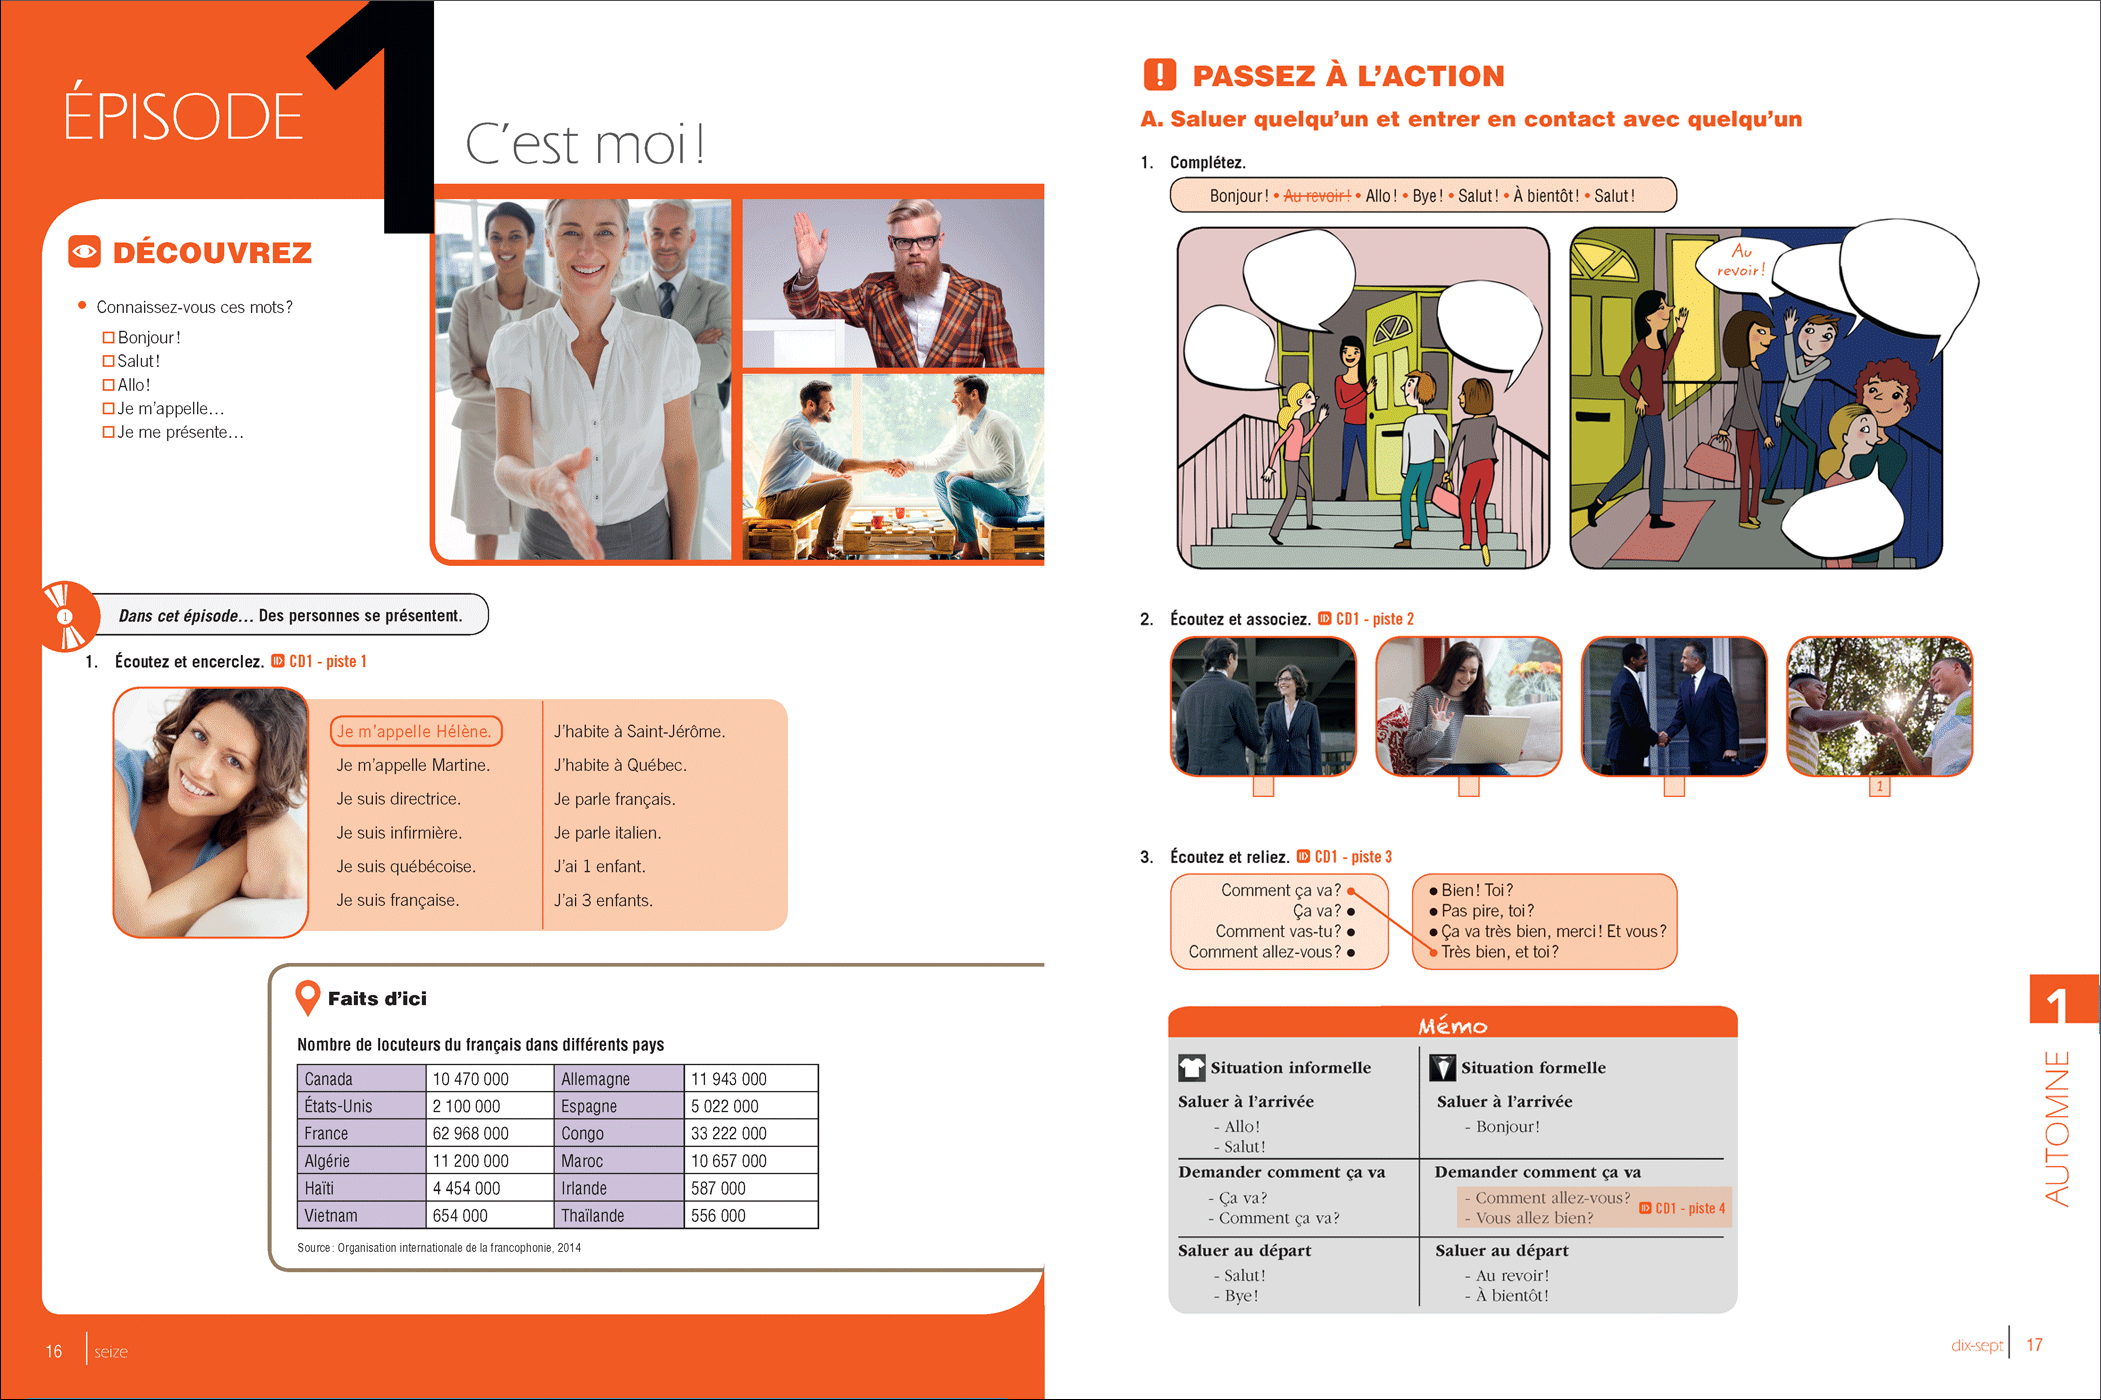 sources https www.desjardins.com ressources pdf 16centre-du-quebec-f.pdf